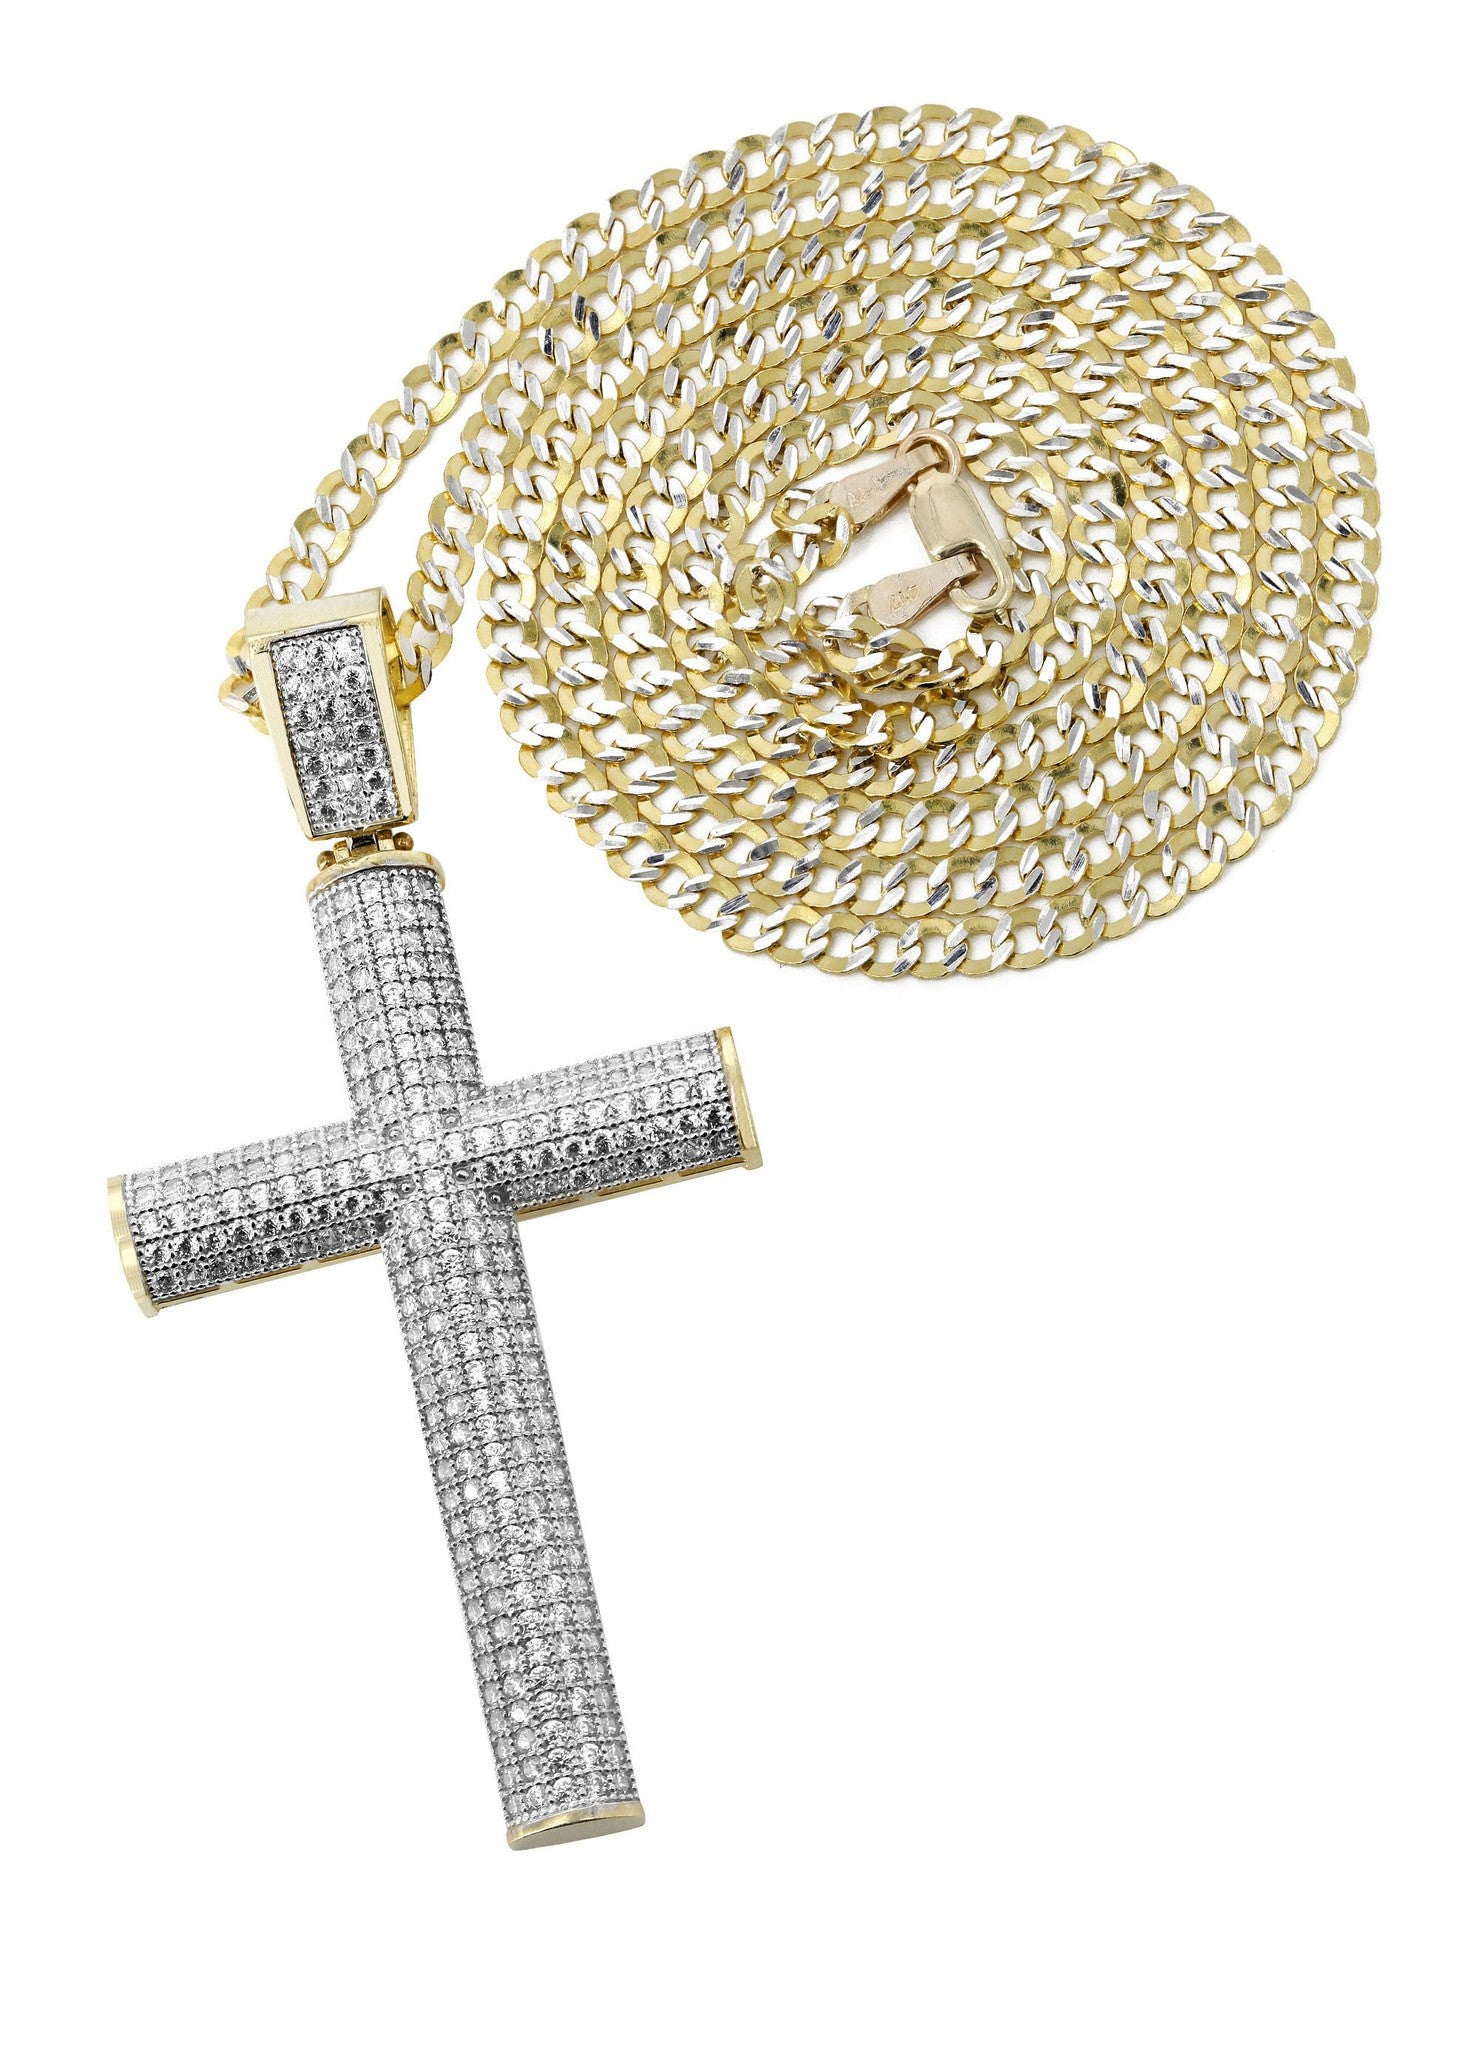 10K Yellow Gold Pave Cuban Chain & Cz Gold Cross Necklace / Appx. 13.1 Grams